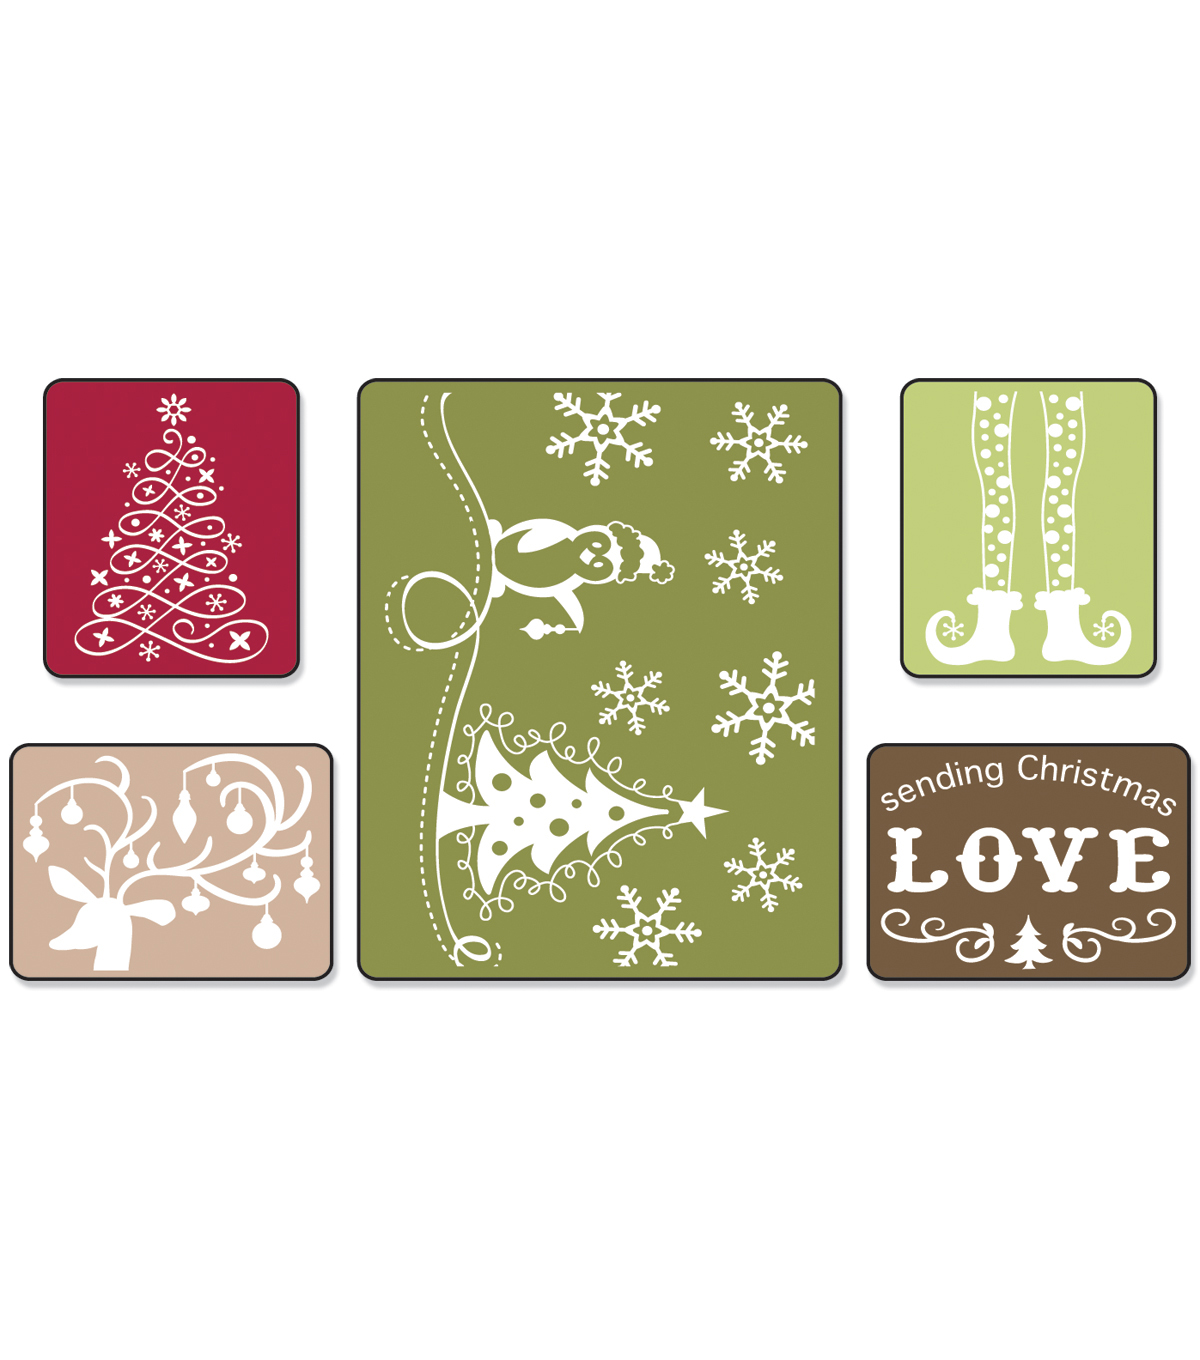 Sizzix Textured Impressions Emboss Folder-Sending Christmas Love